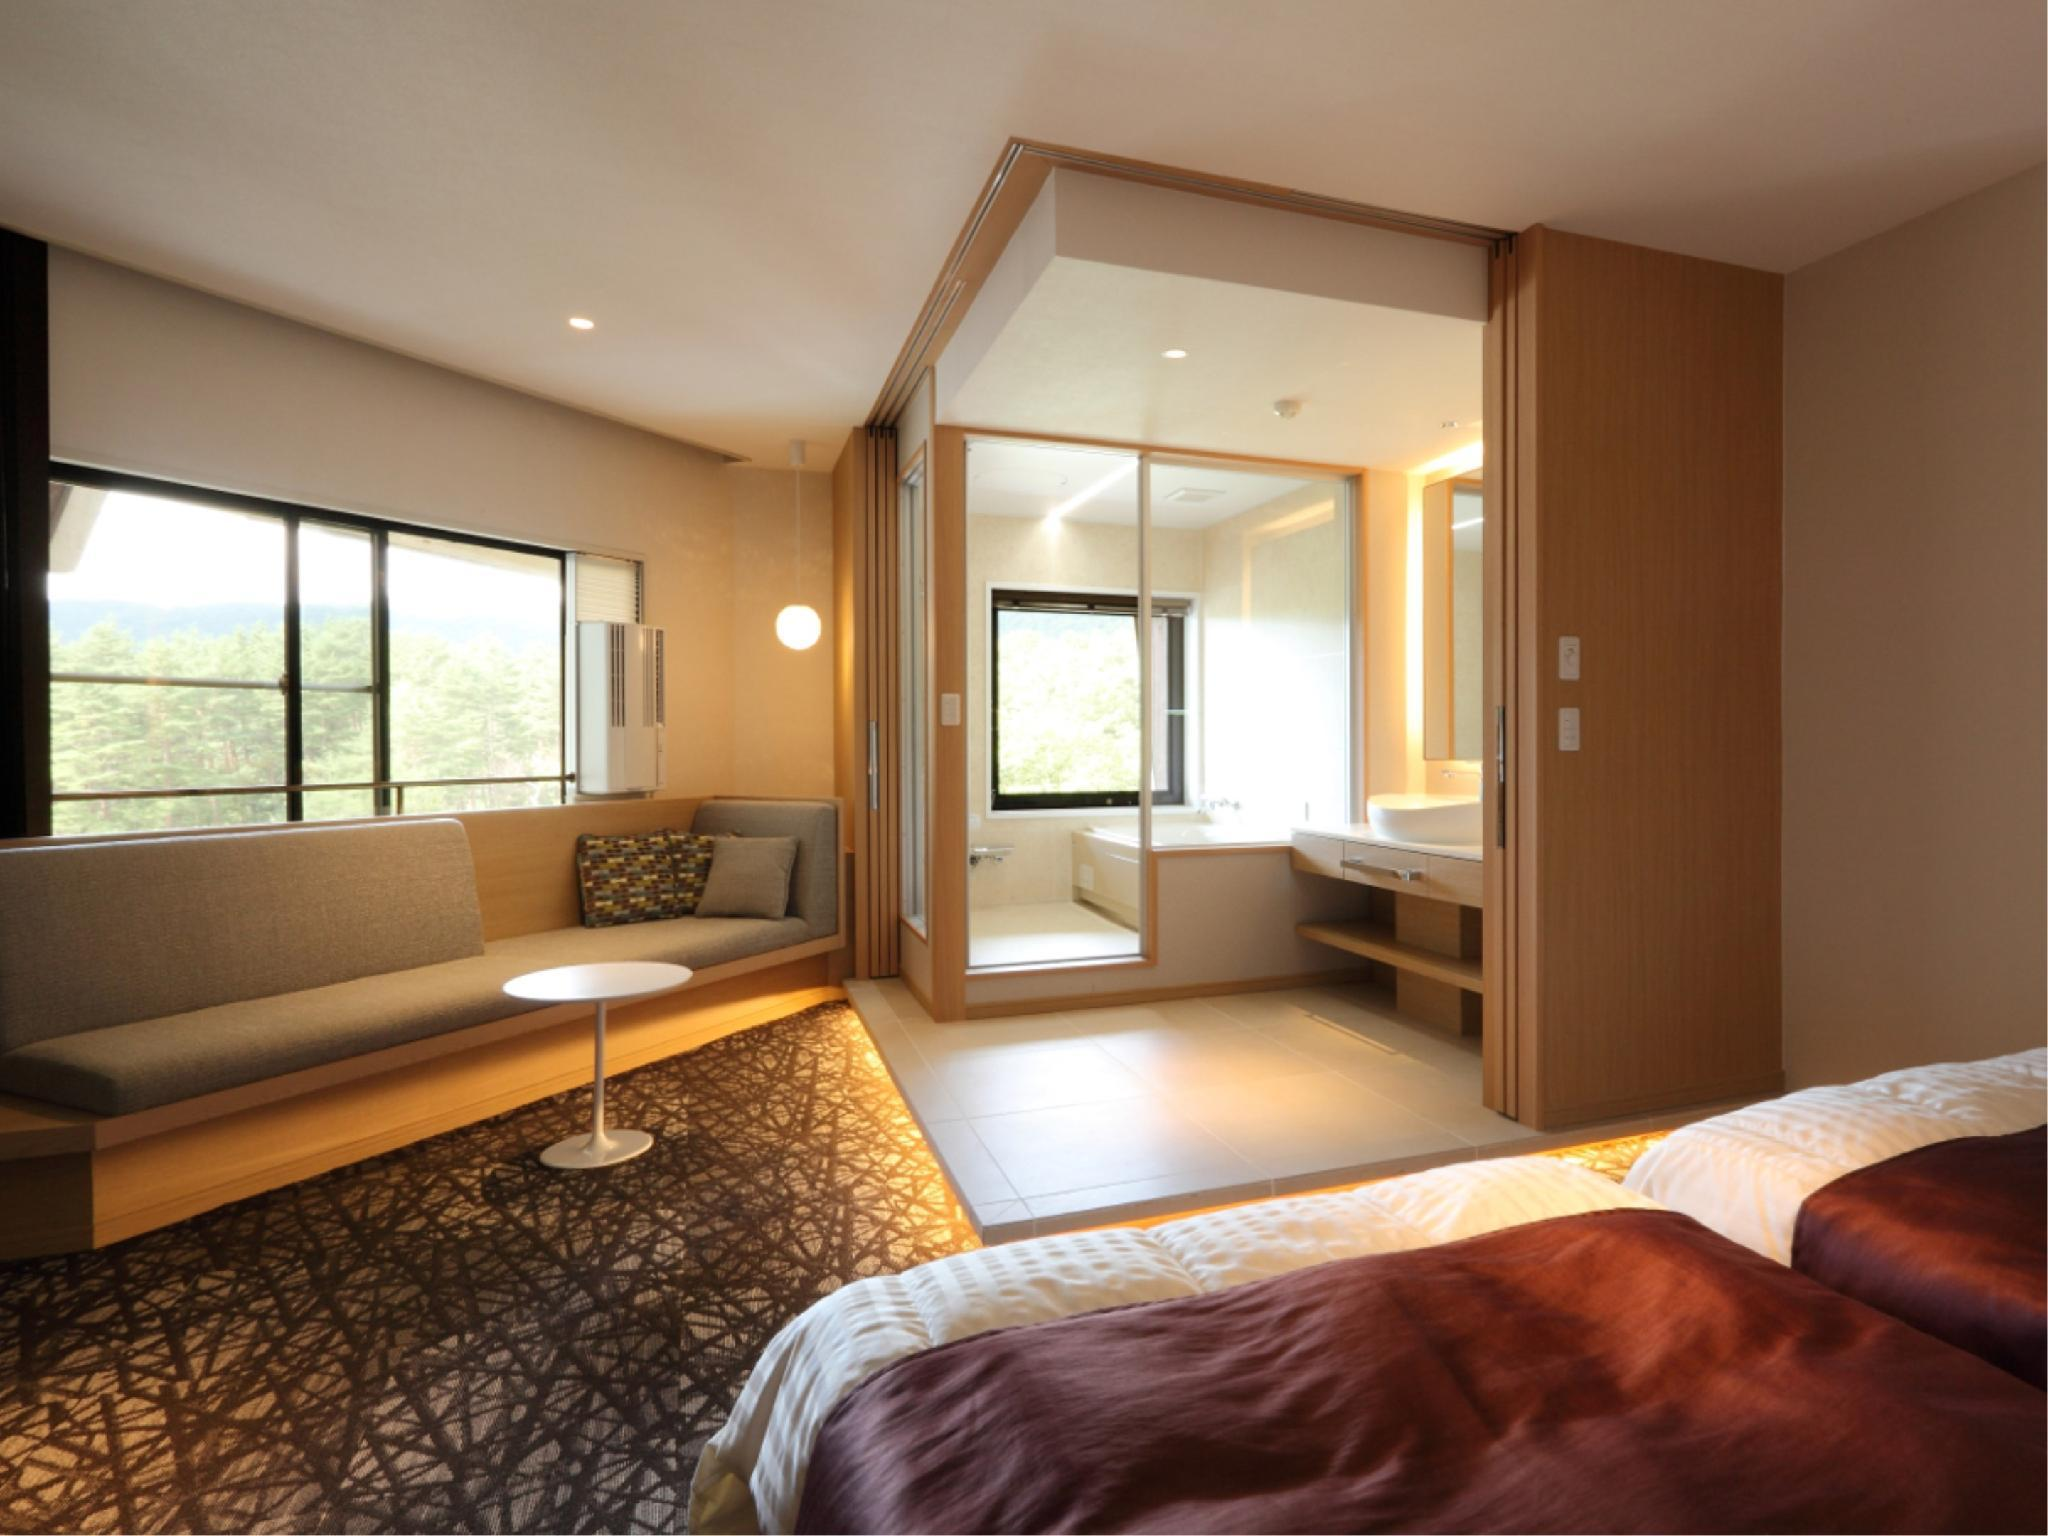 트윈룸(전망탕) (Twin Room with Scenic View Bath)